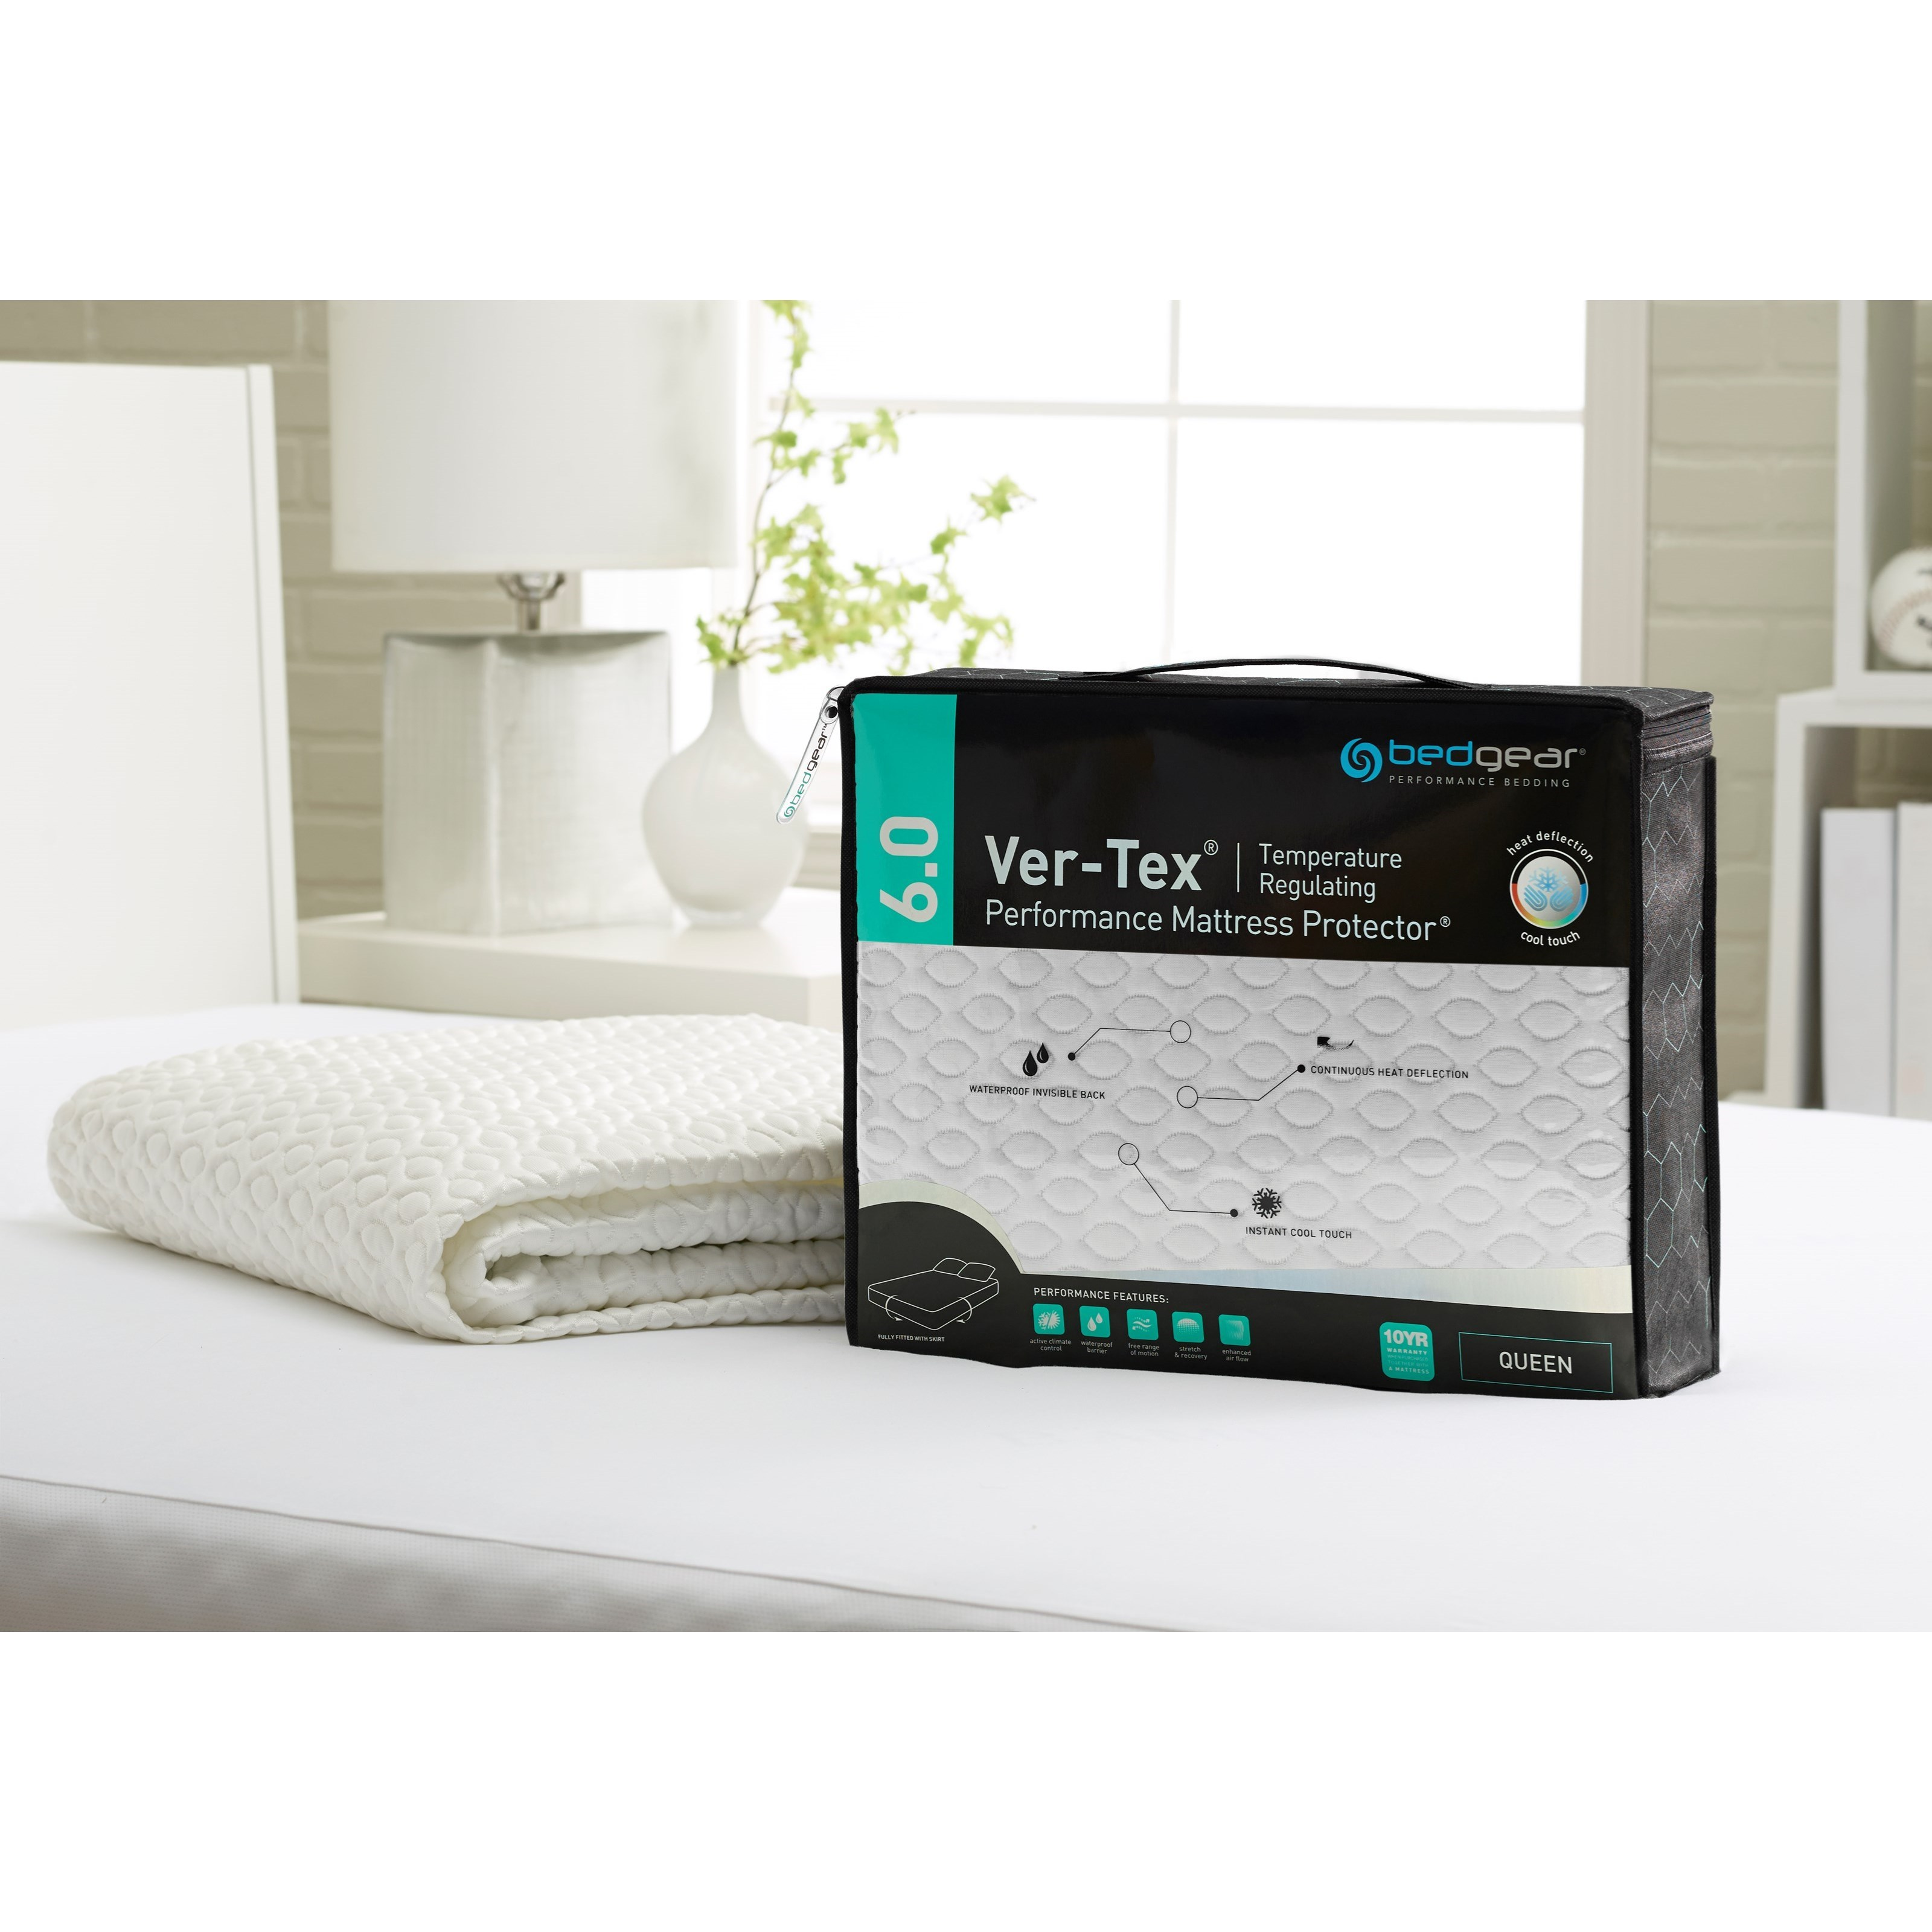 Ver-Tex® Twin XL  6.0 Ver-Tex® Mattress Protector by Bedgear at Darvin Furniture